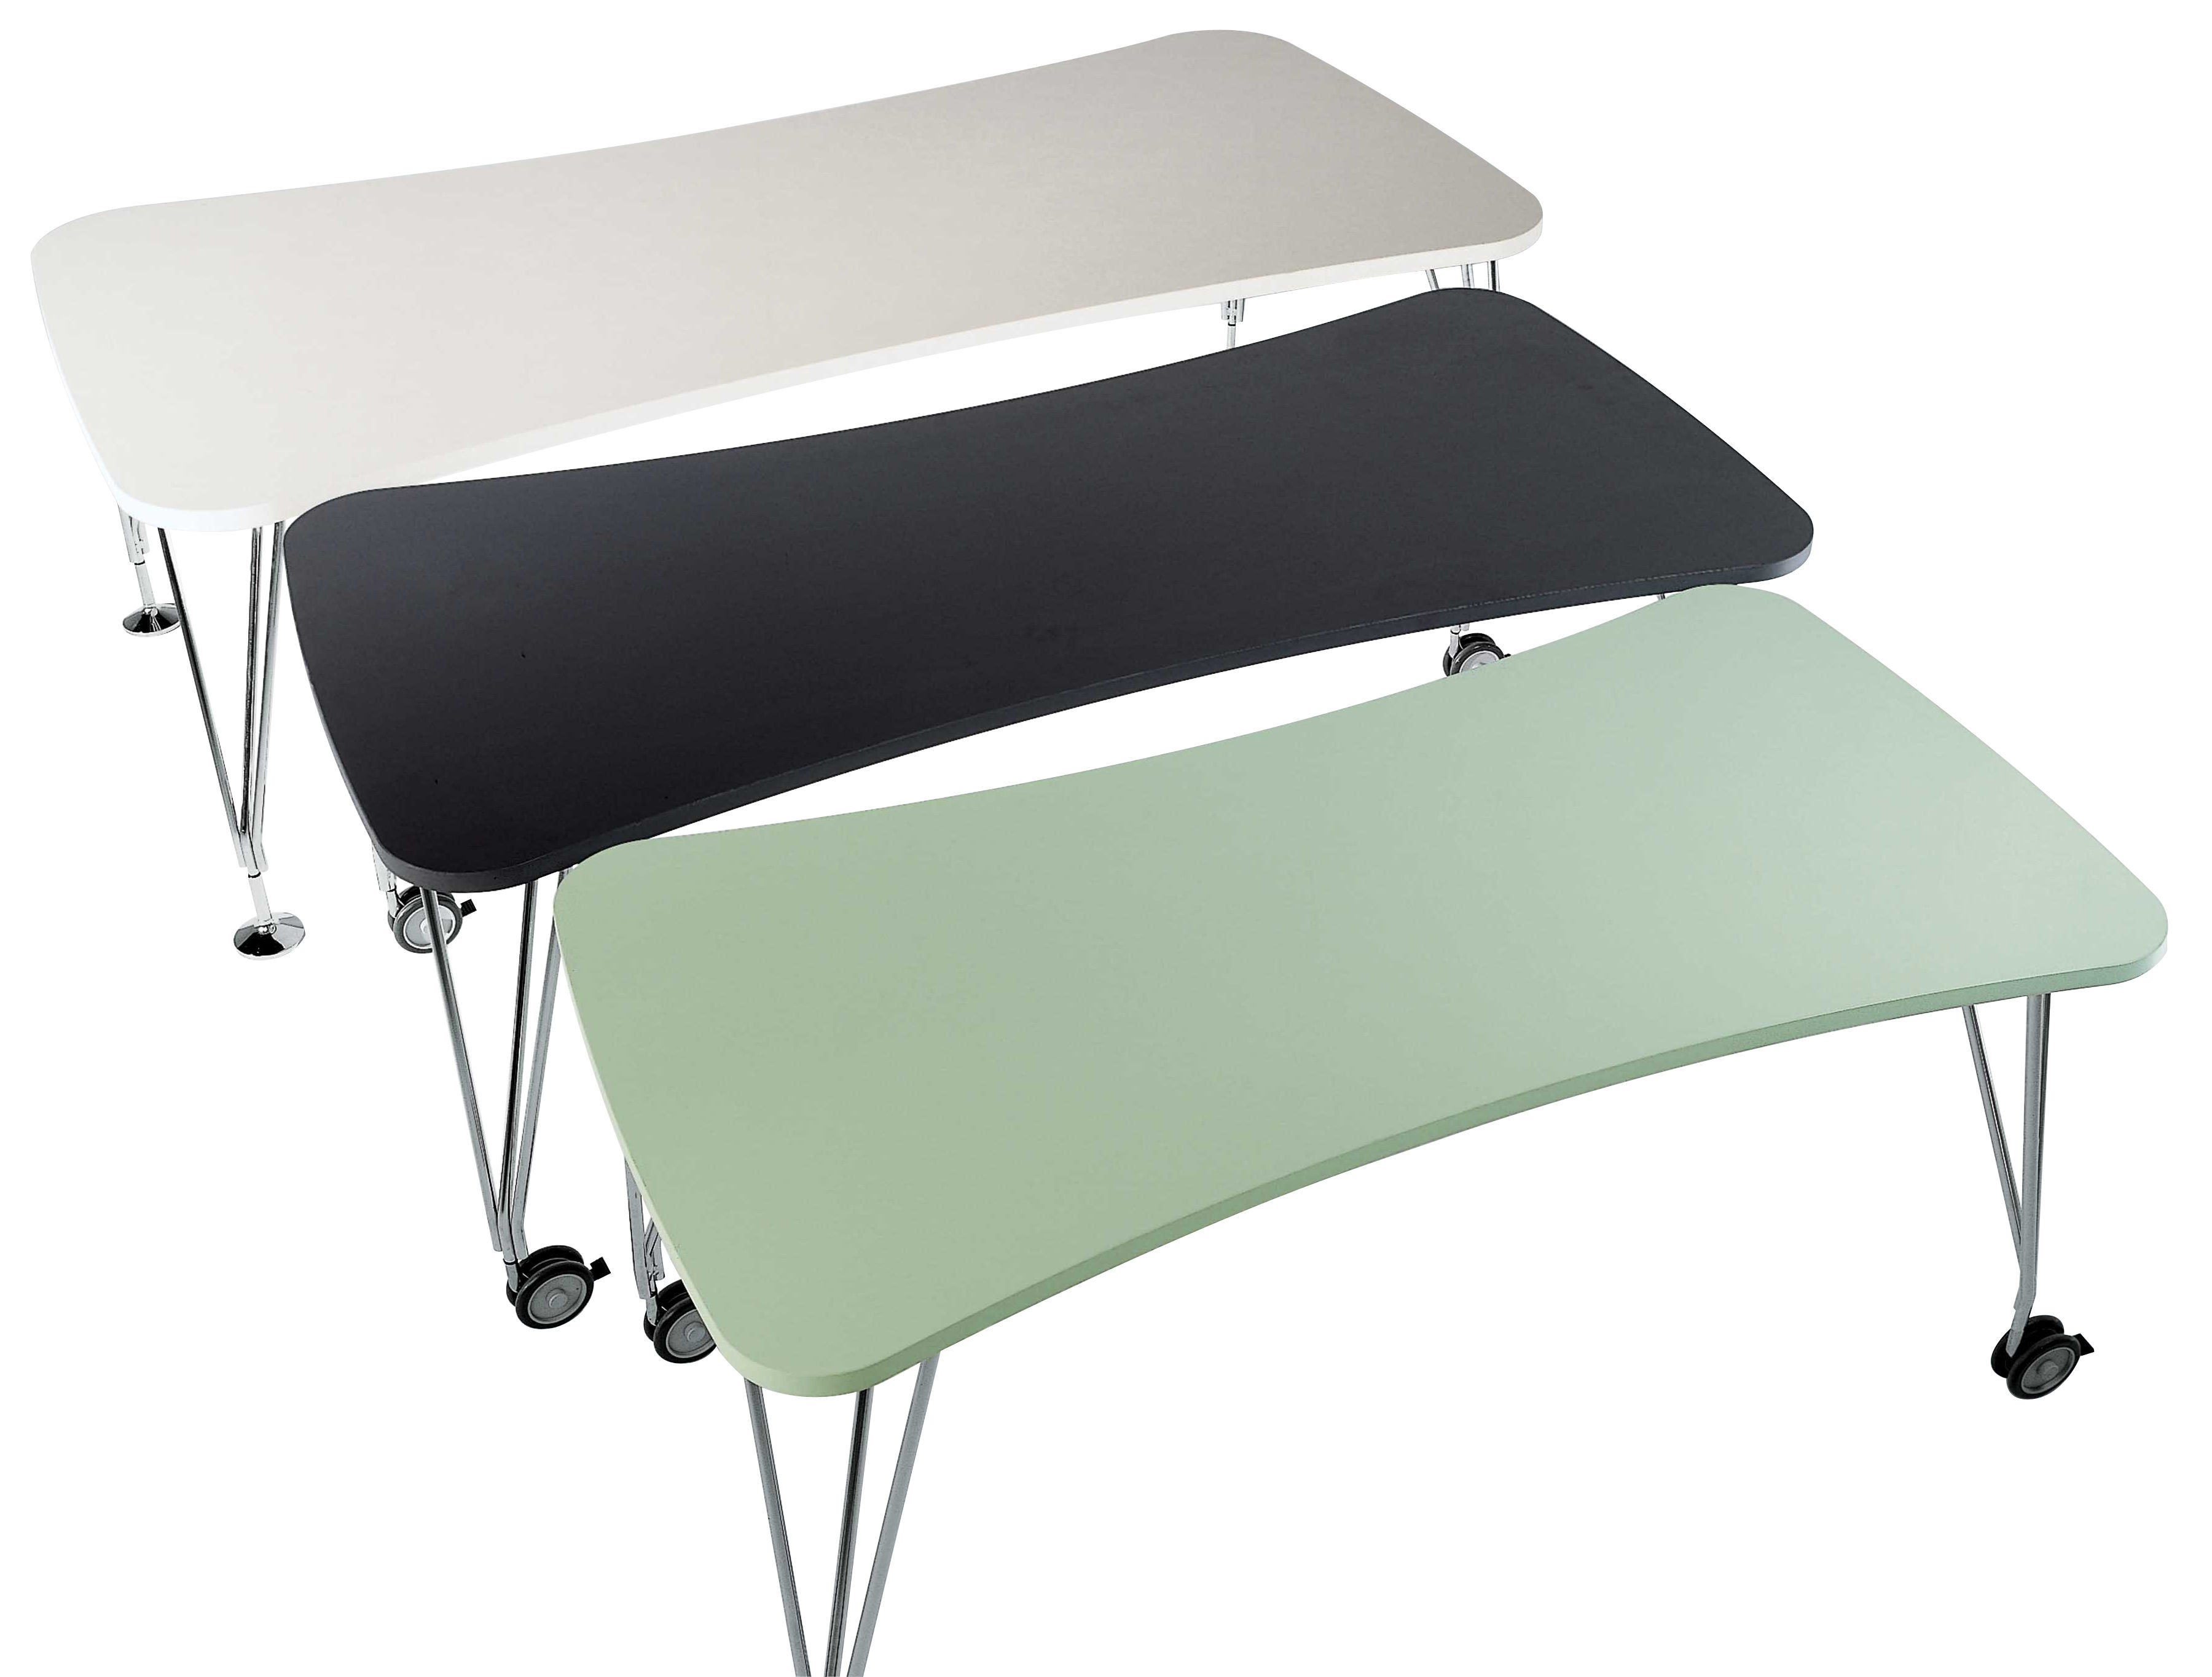 Furniture - Teen furniture - Max Rectangular table - With feet - 190 cm by Kartell - white 190 cm - Chromed steel, Laminate